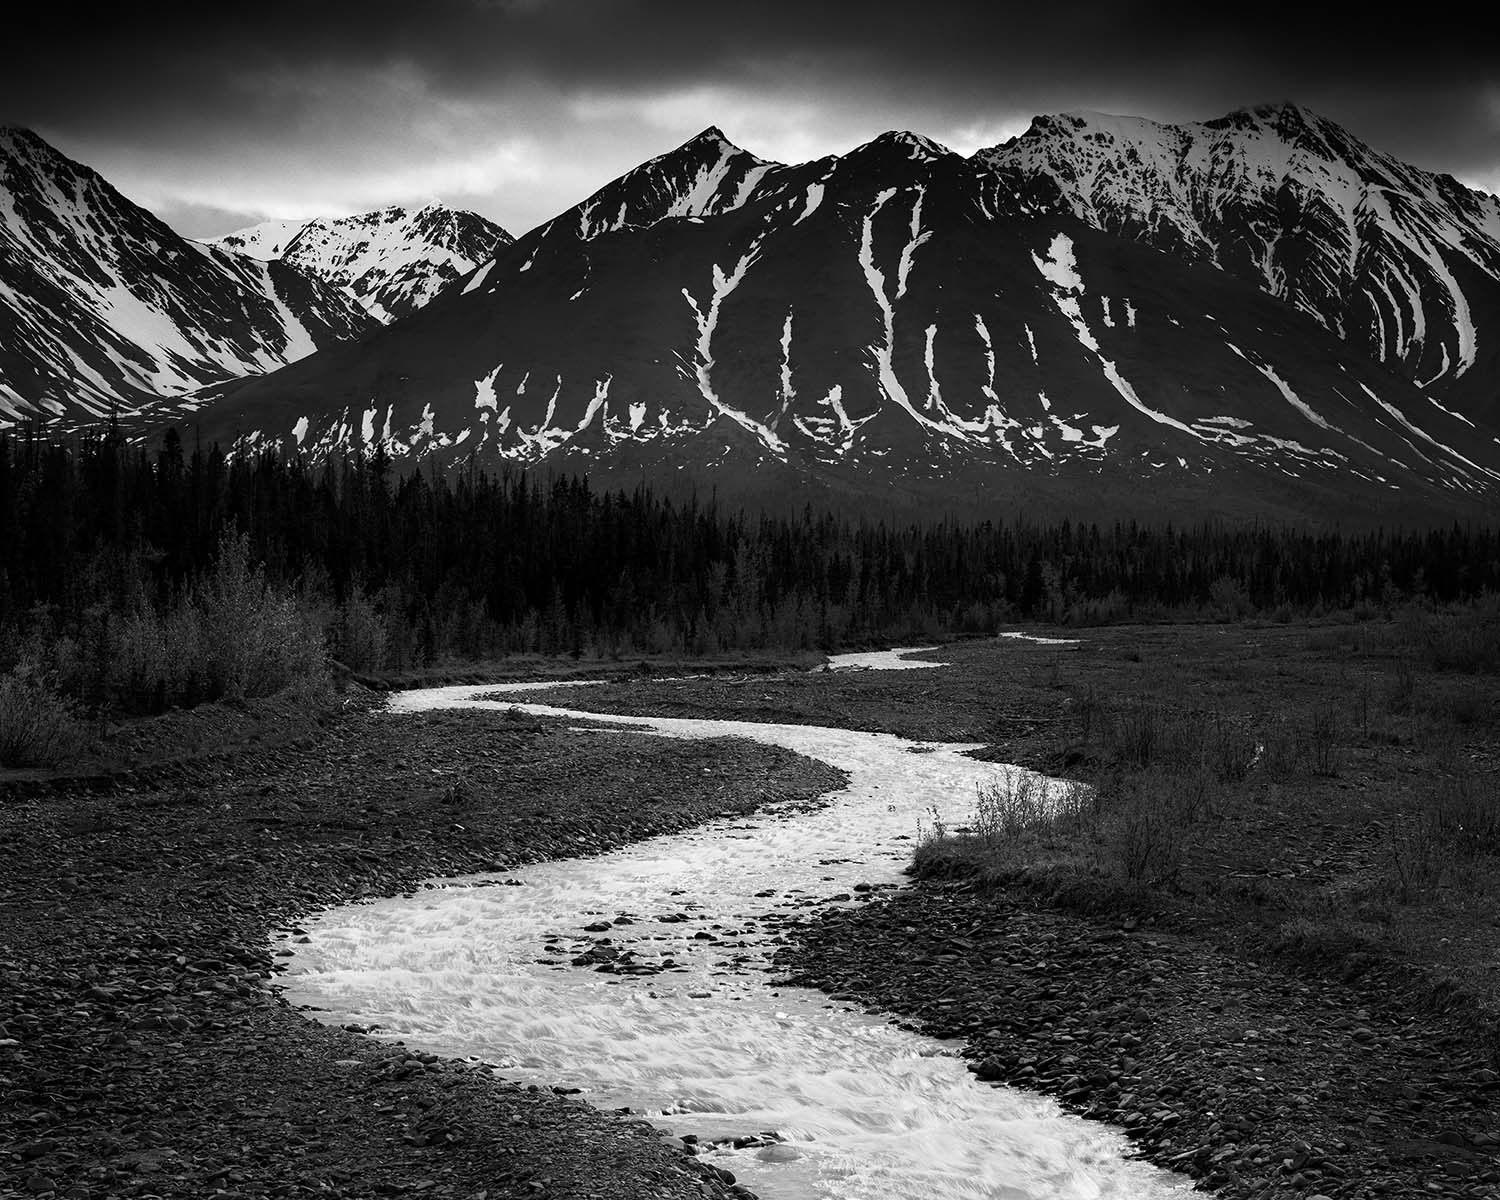 Amazing landscapes captured in timeless black and white